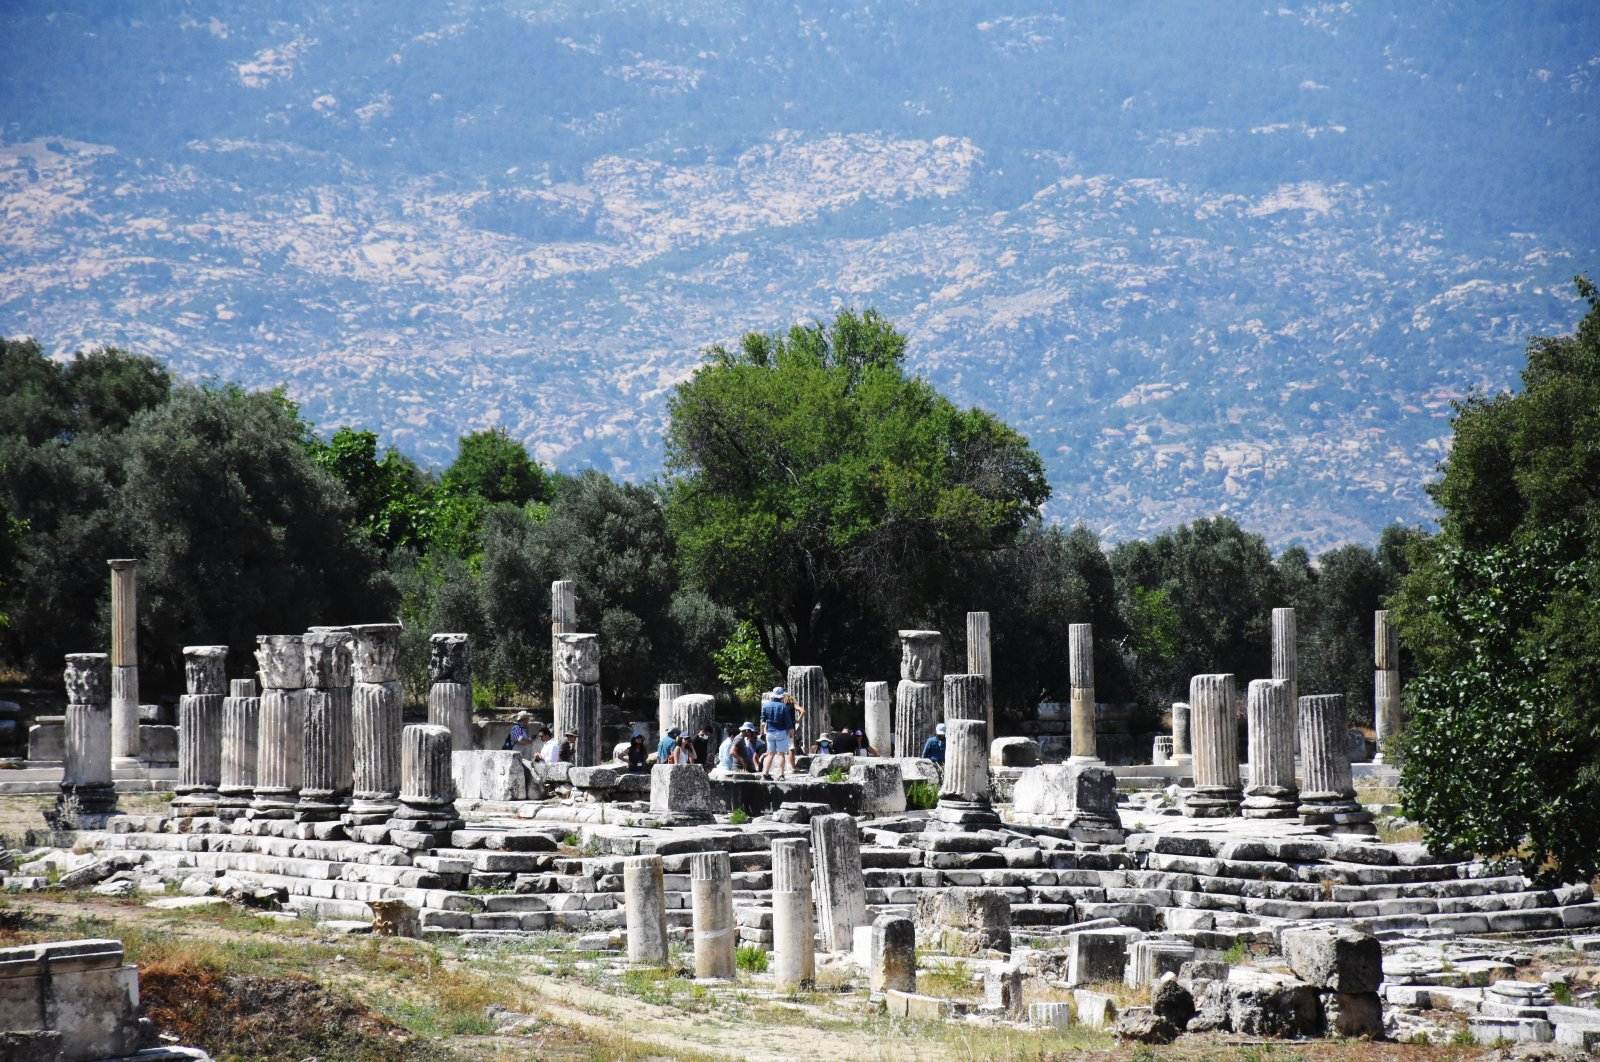 A view from the ancient city of Stratonikeia, Muğla, southwestern Turkey.